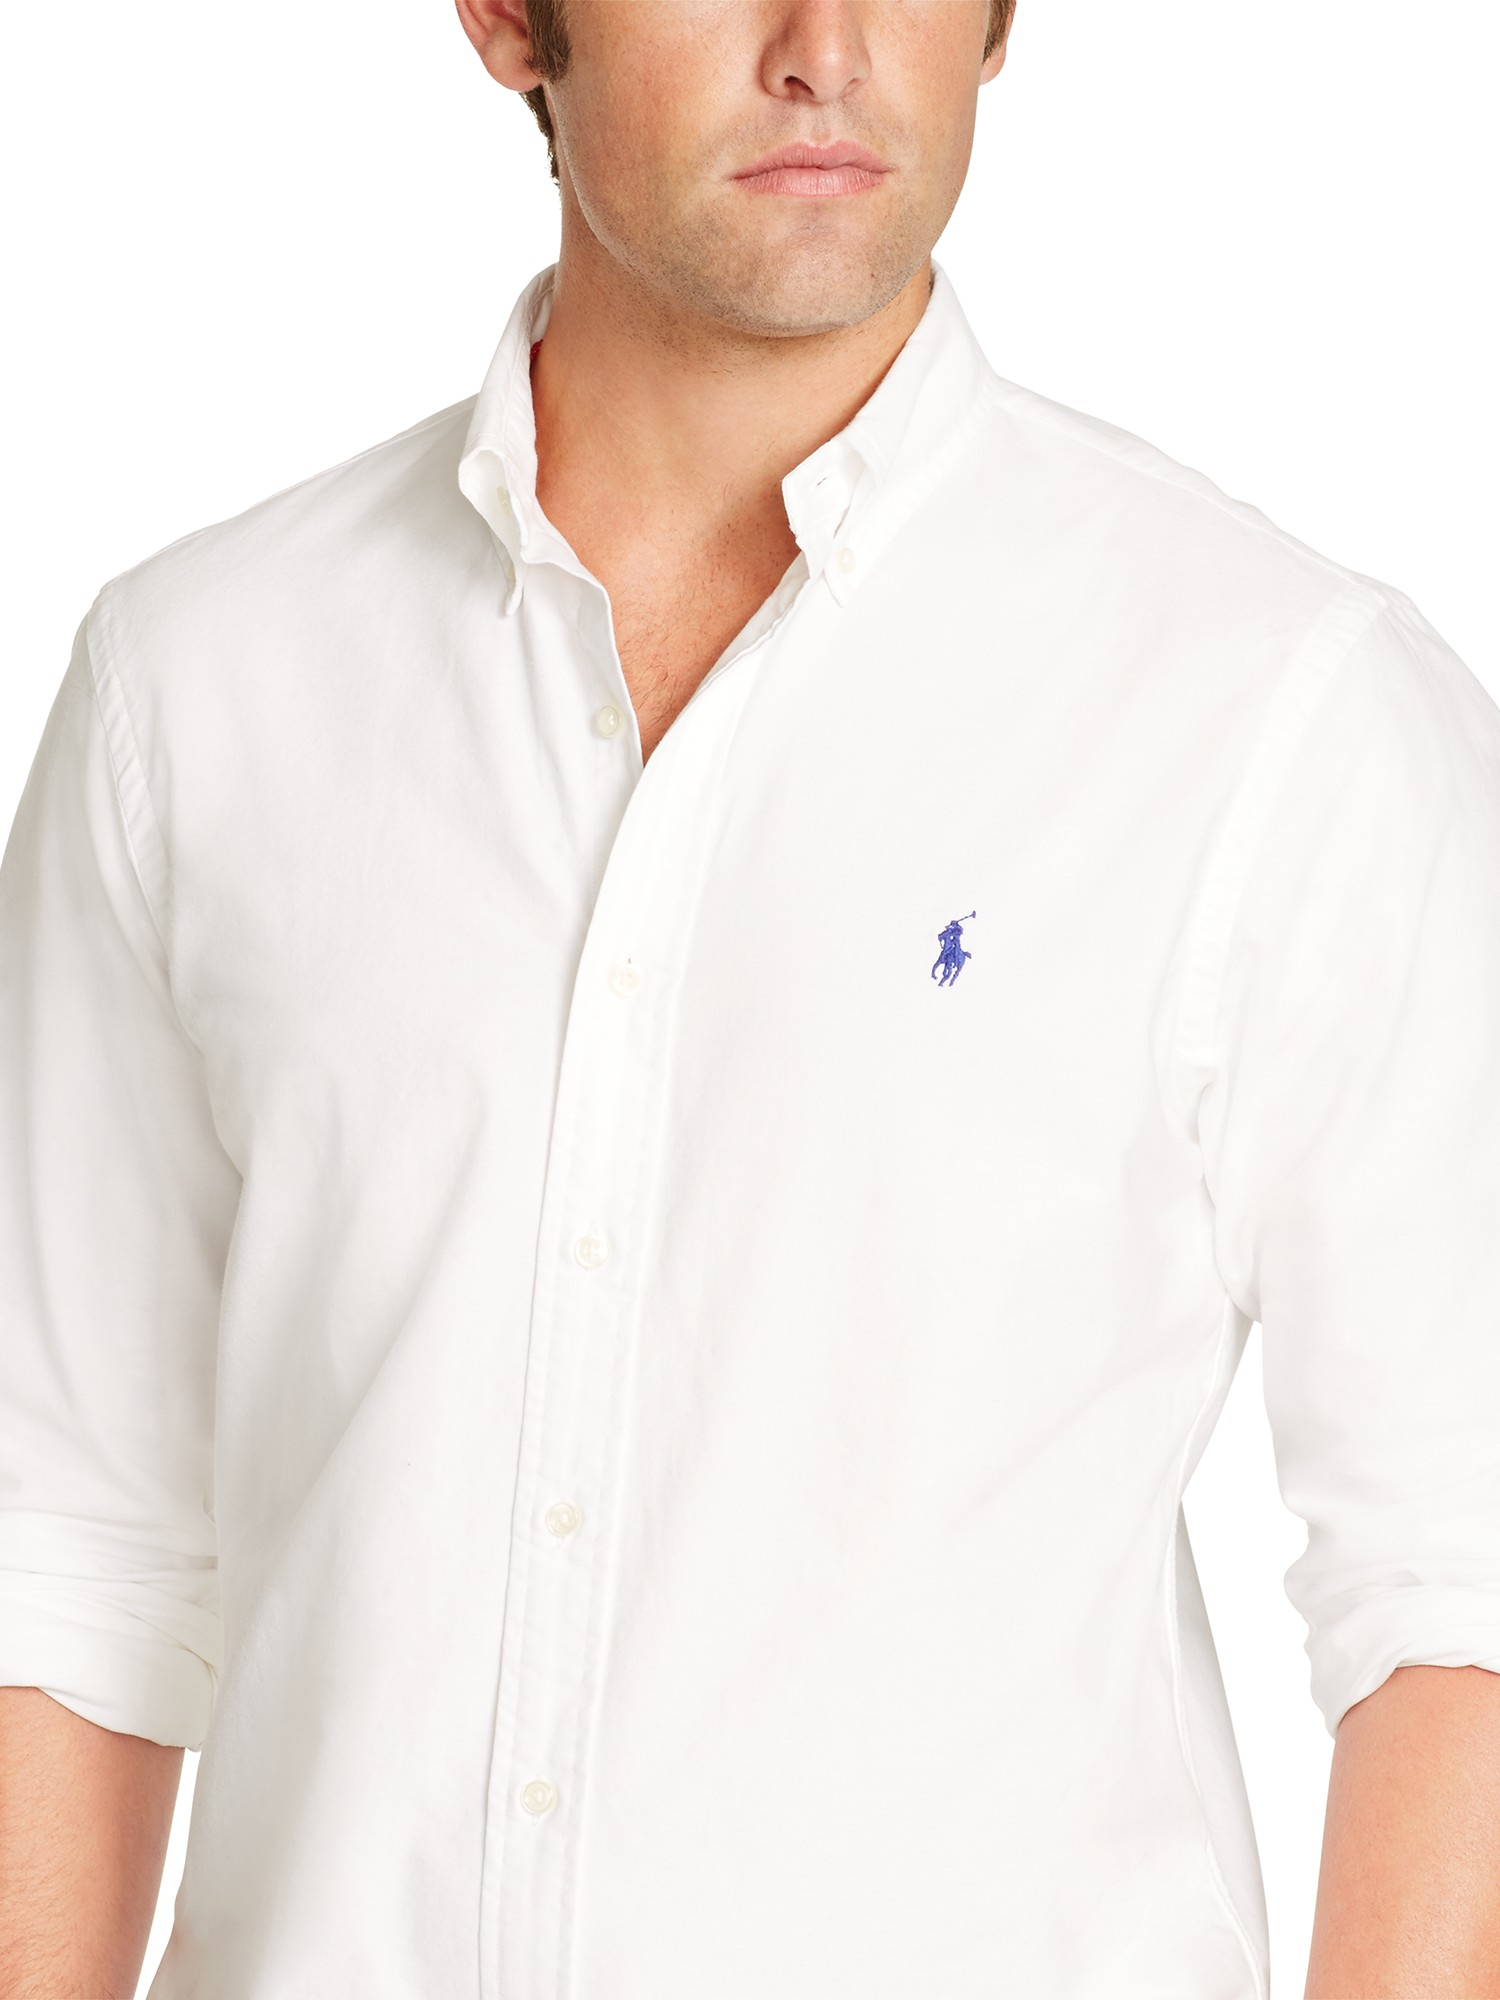 Polo ralph lauren slim fit oxford shirt in white for men for Slim fit collared shirts